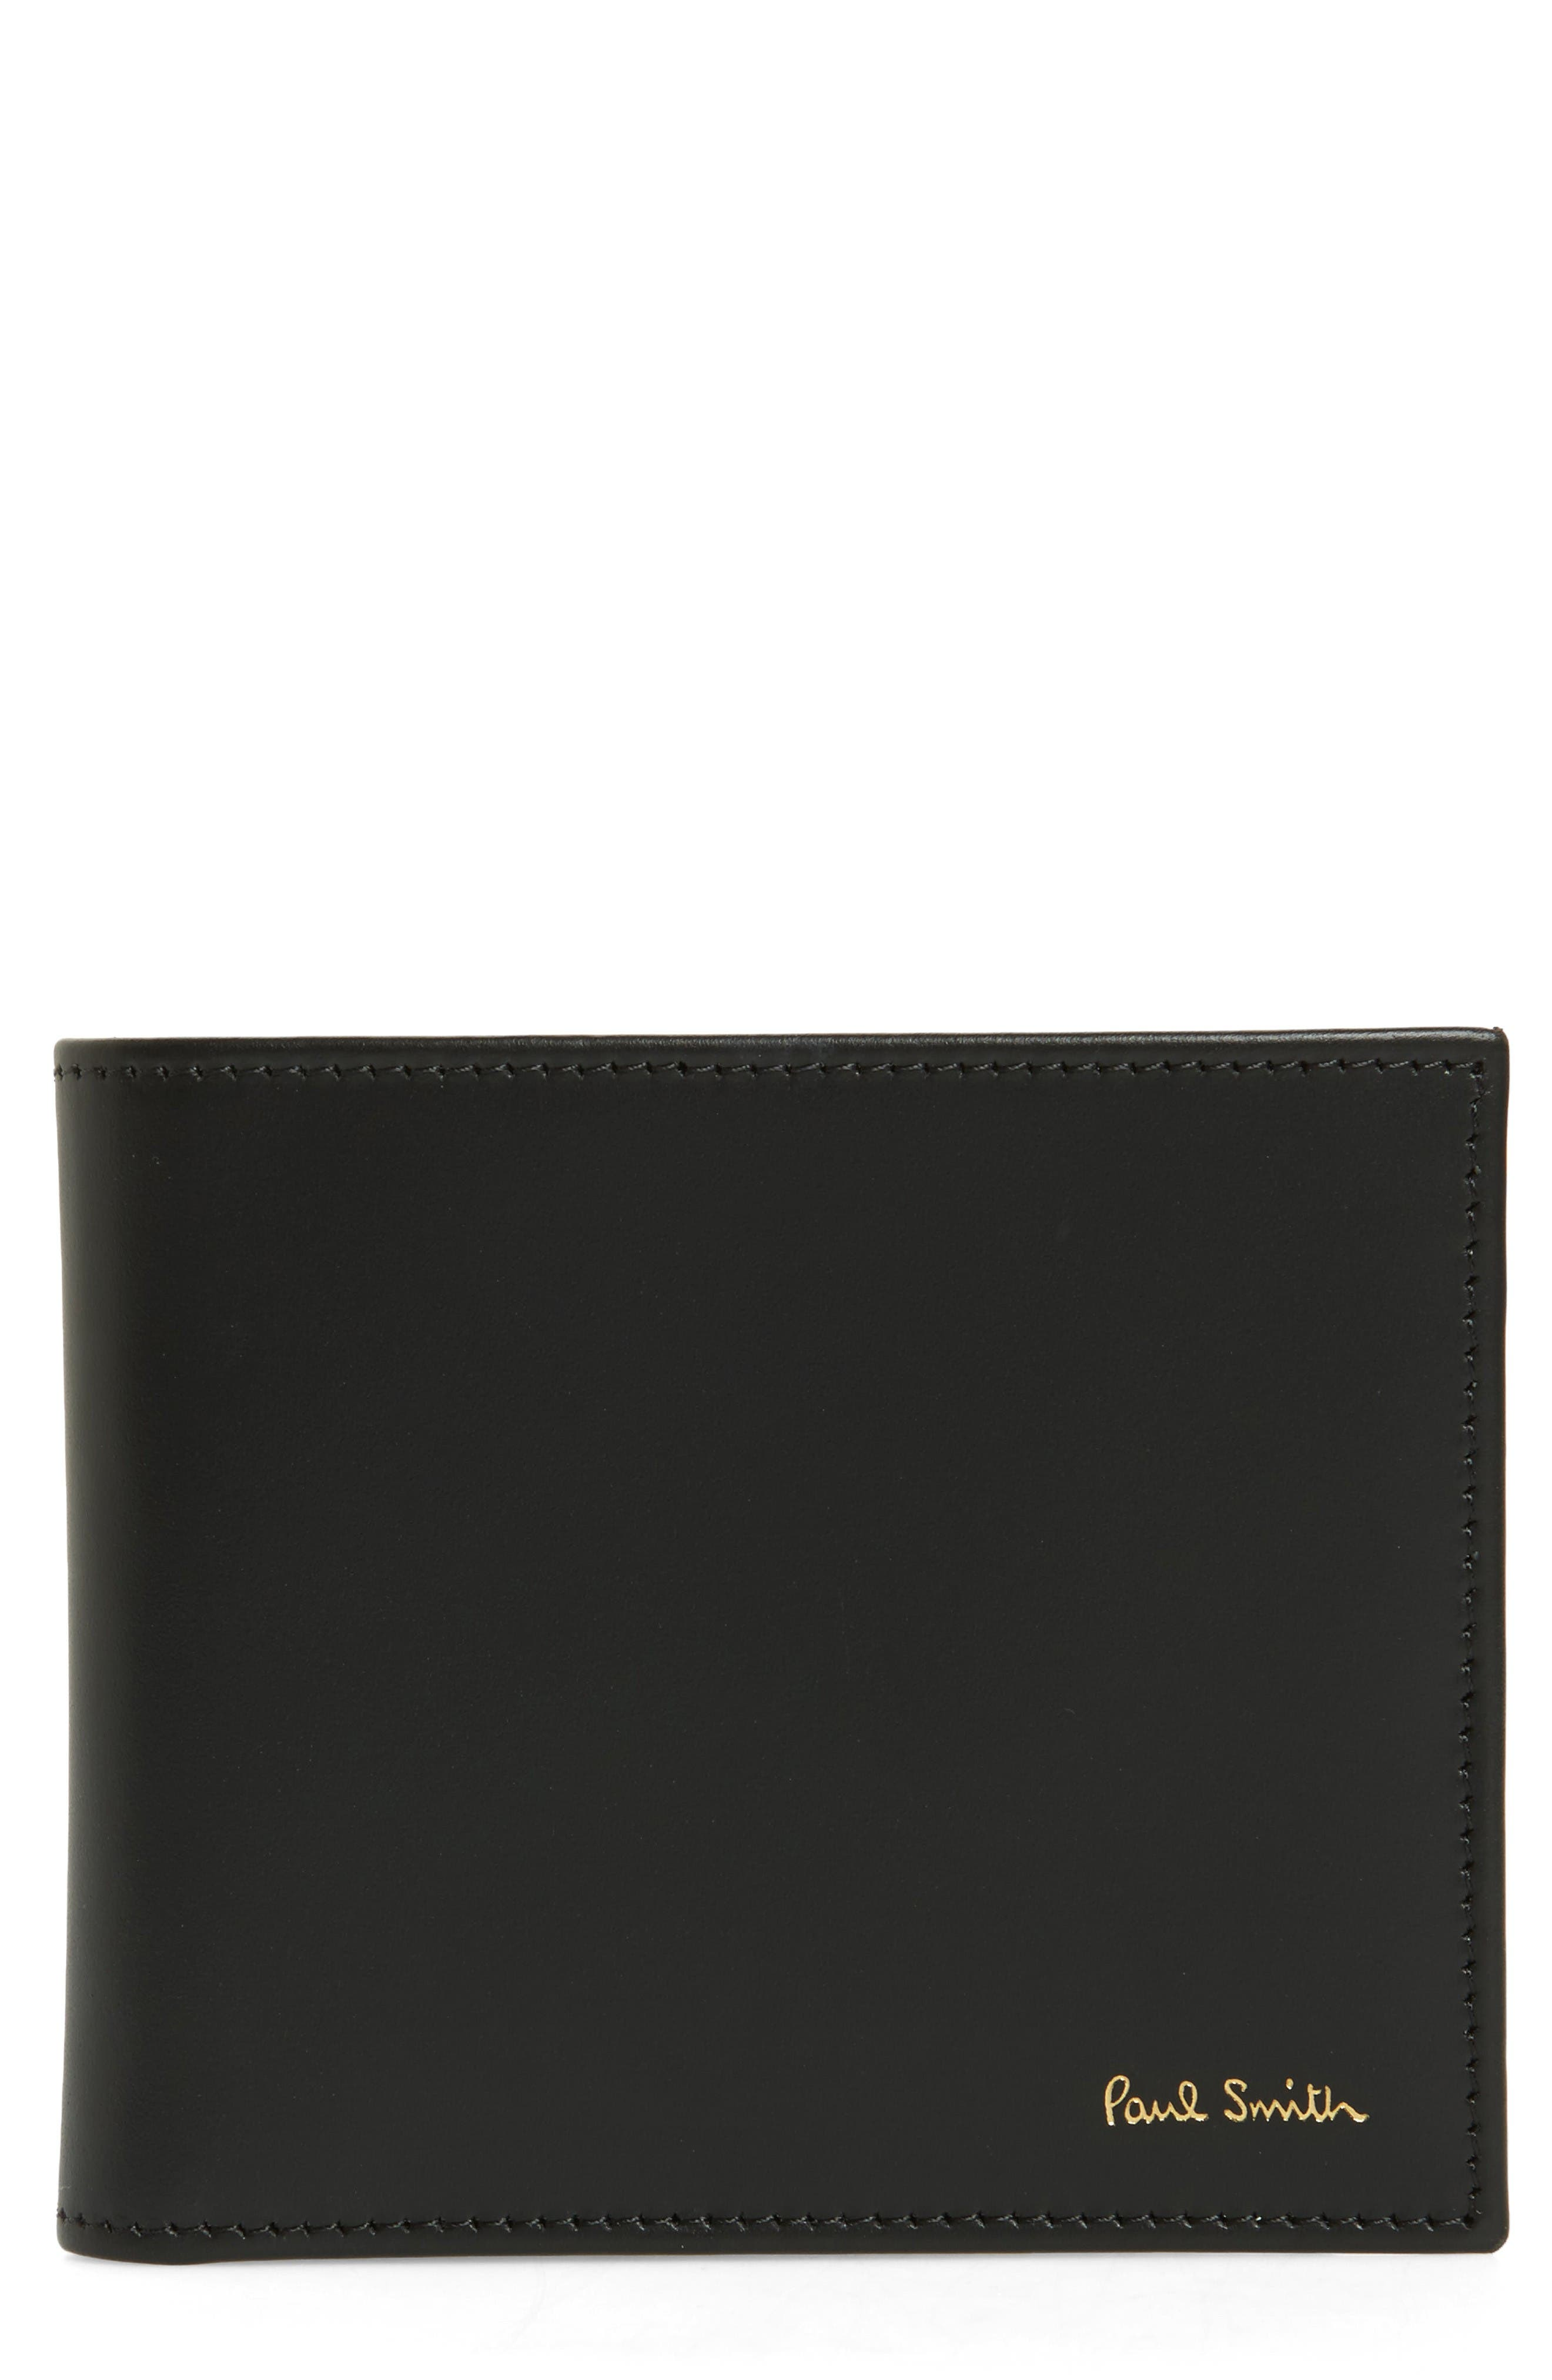 PAUL SMITH Multistripe Calfskin Leather Billfold